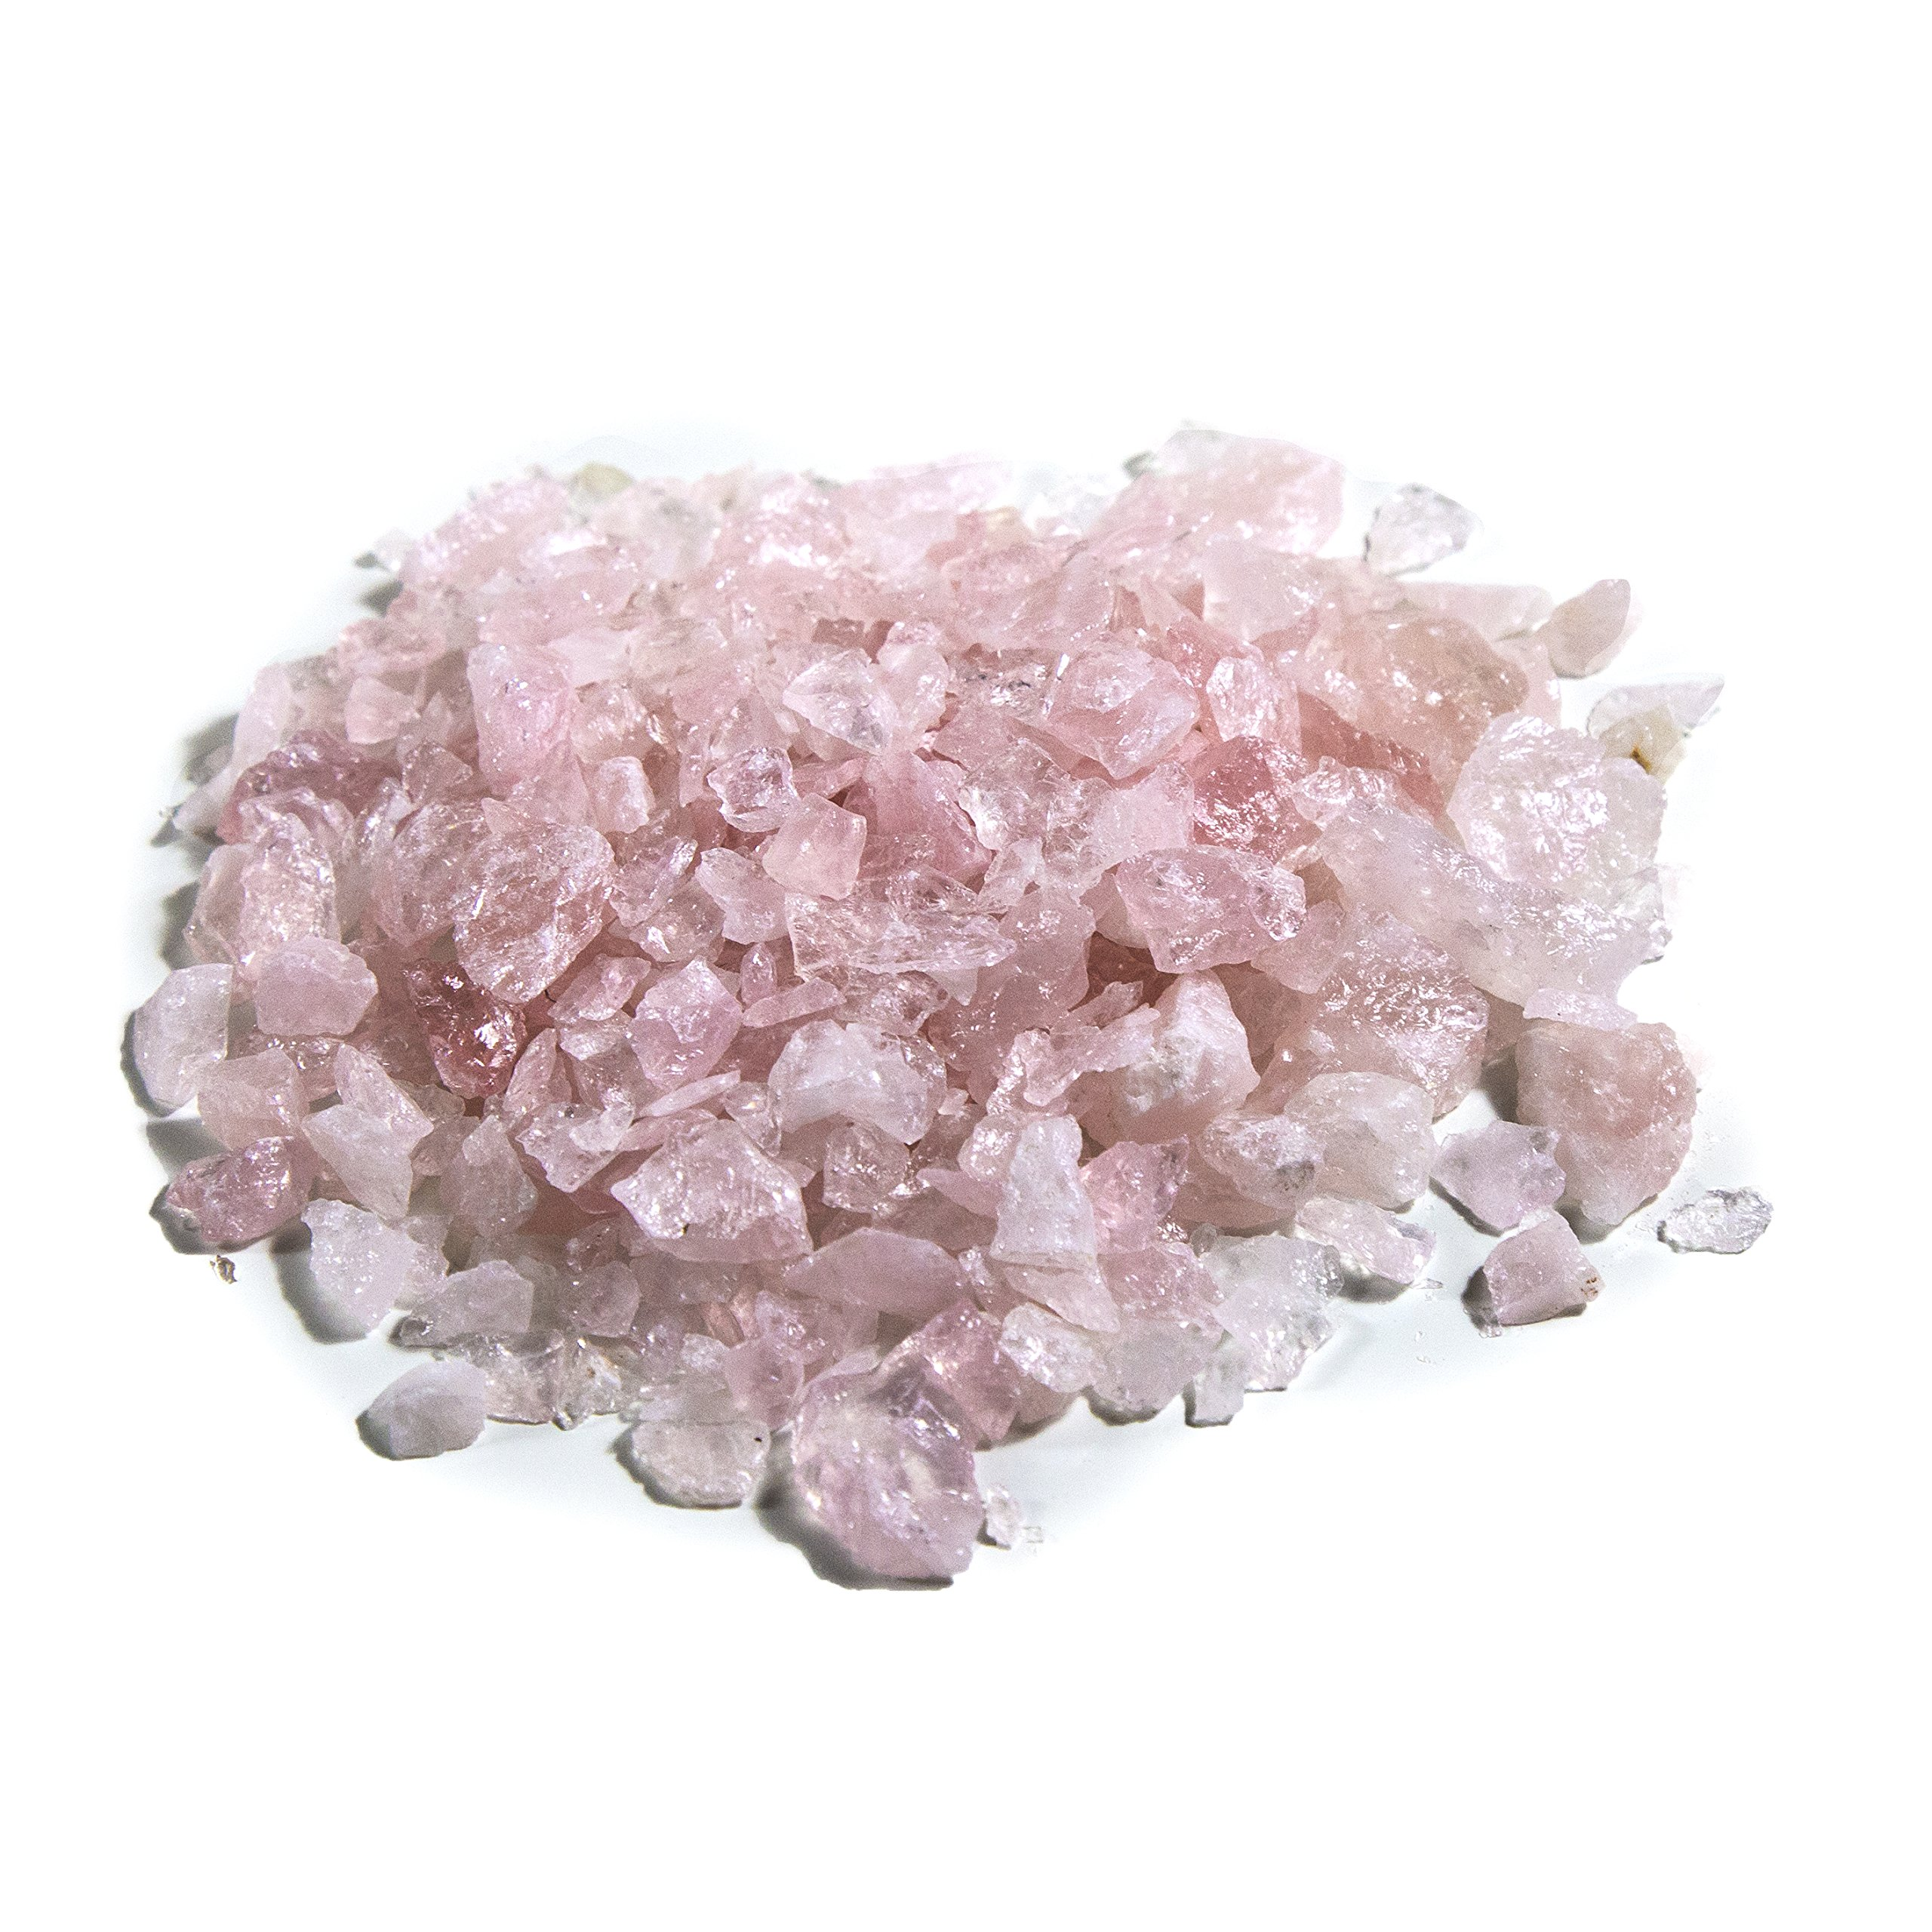 1 lb Bulk Rose Quartz Rough Stones - Natural Raw Stones Mix & Fountain Rocks for Tumbling, Cabbing, Polishing, Wire Wrapping, Wicca & Reiki Crystal Healing